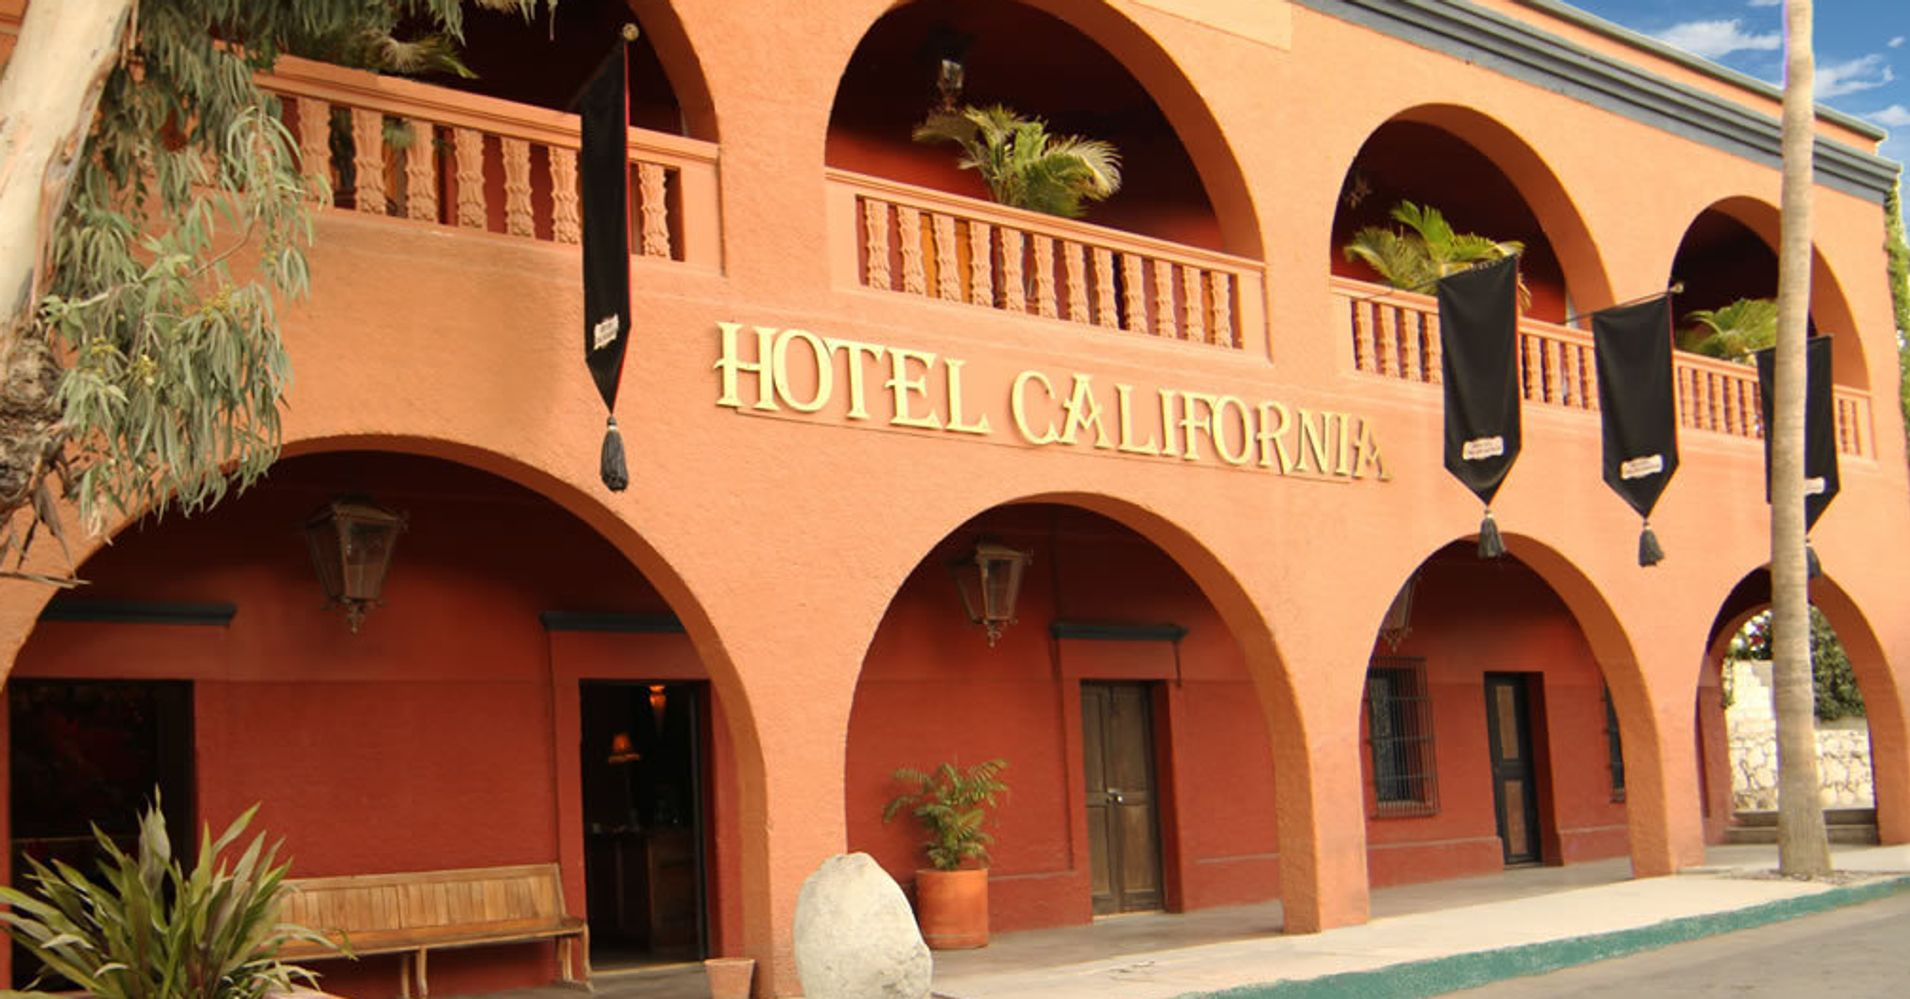 The eagles sue hotel california huffpost for Hotel california